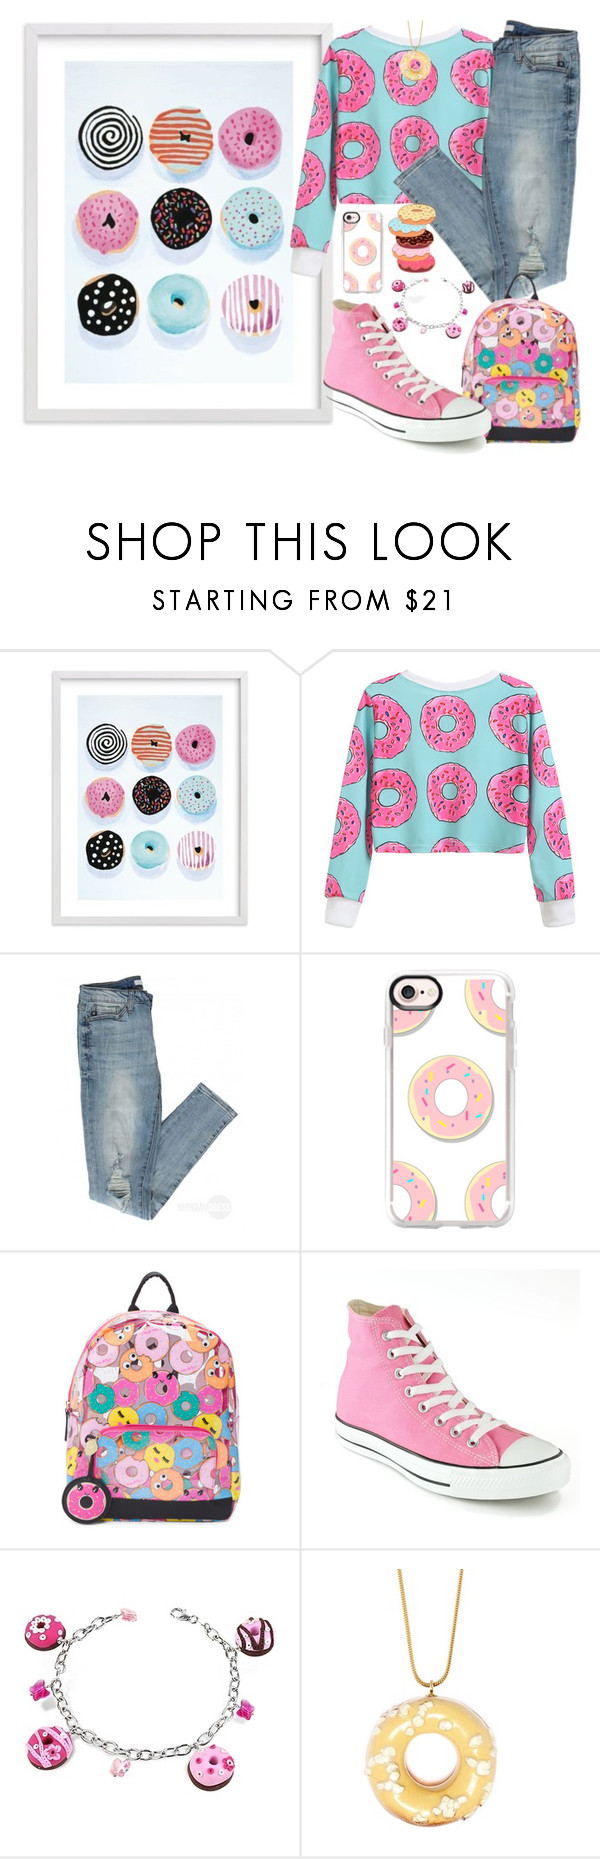 """""""Go Nuts Over Donuts!"""" by tlb0318 ❤ liked on Polyvore featuring Casetify, Converse, Dolci Gioie and Tadam!"""